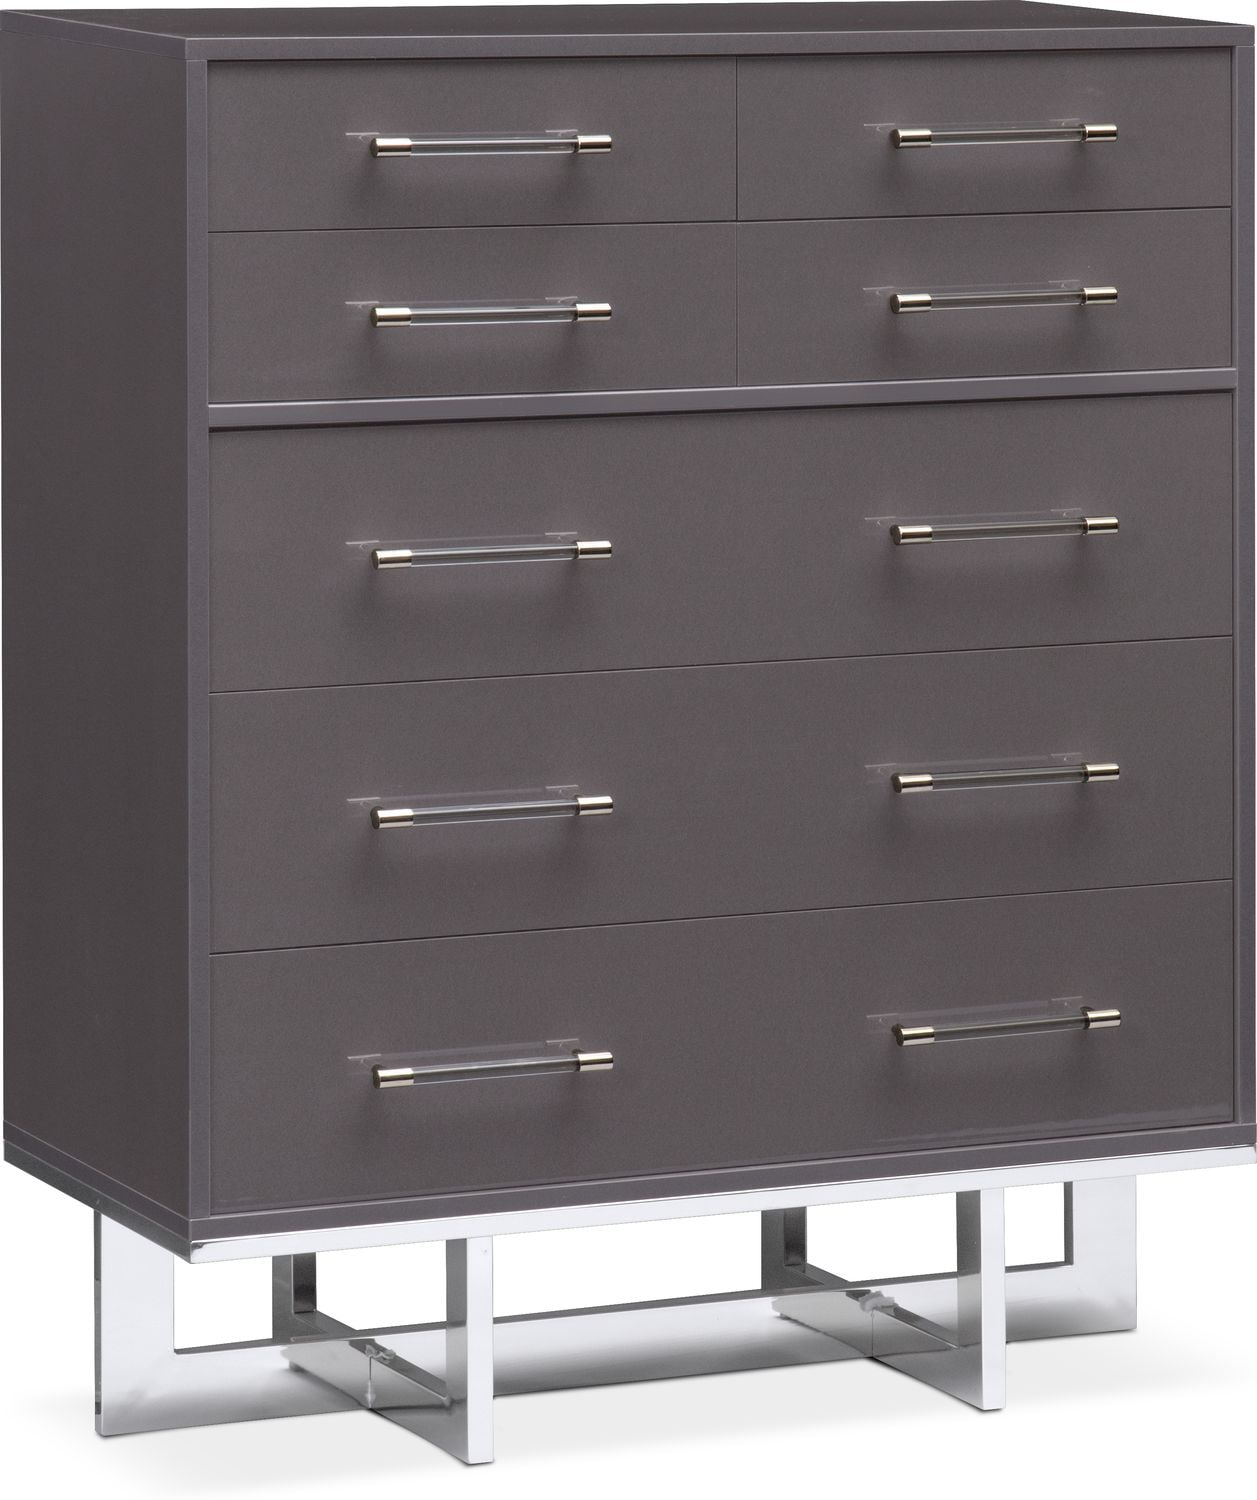 Bedroom Furniture - Concerto Chest